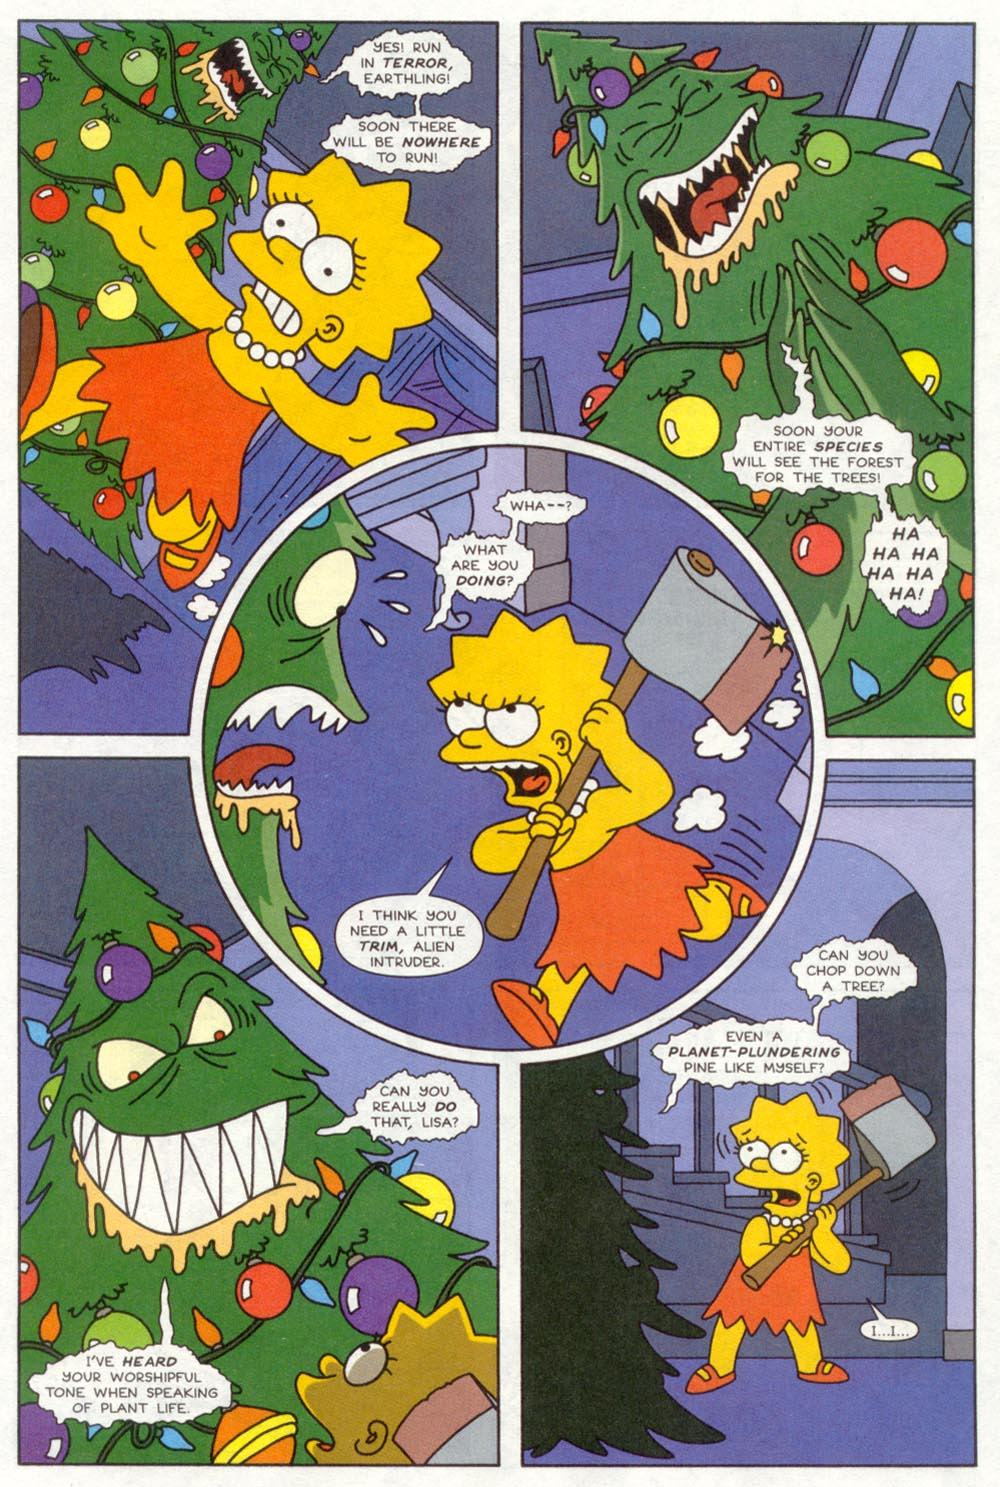 Read online Treehouse of Horror comic -  Issue #4 - 10